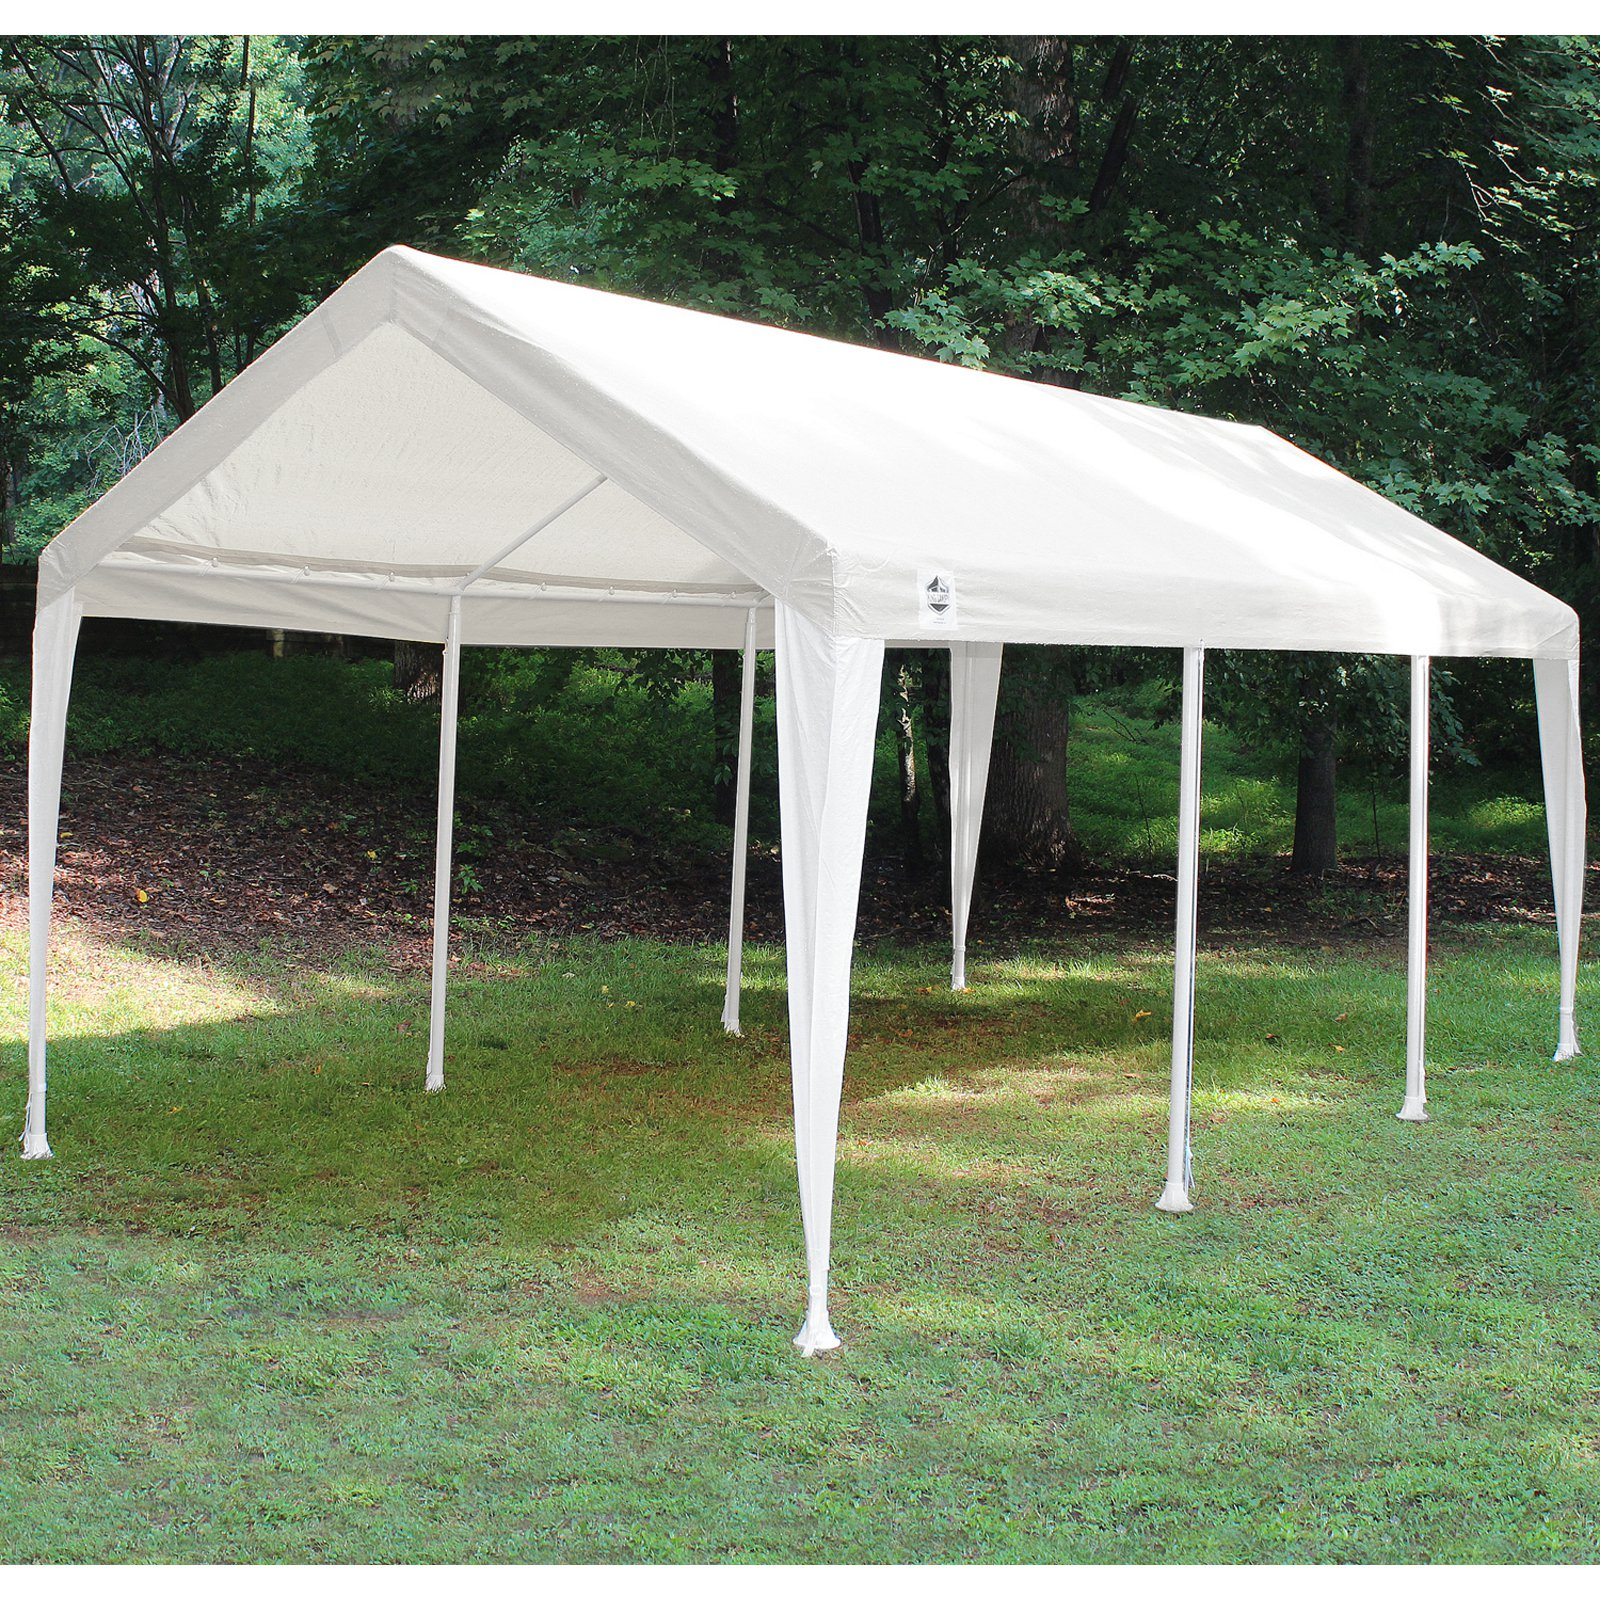 King Canopy Titan 10 x 20 ft. Canopy Replacement Cover - White - Walmart.com & King Canopy Titan 10 x 20 ft. Canopy Replacement Cover - White ...